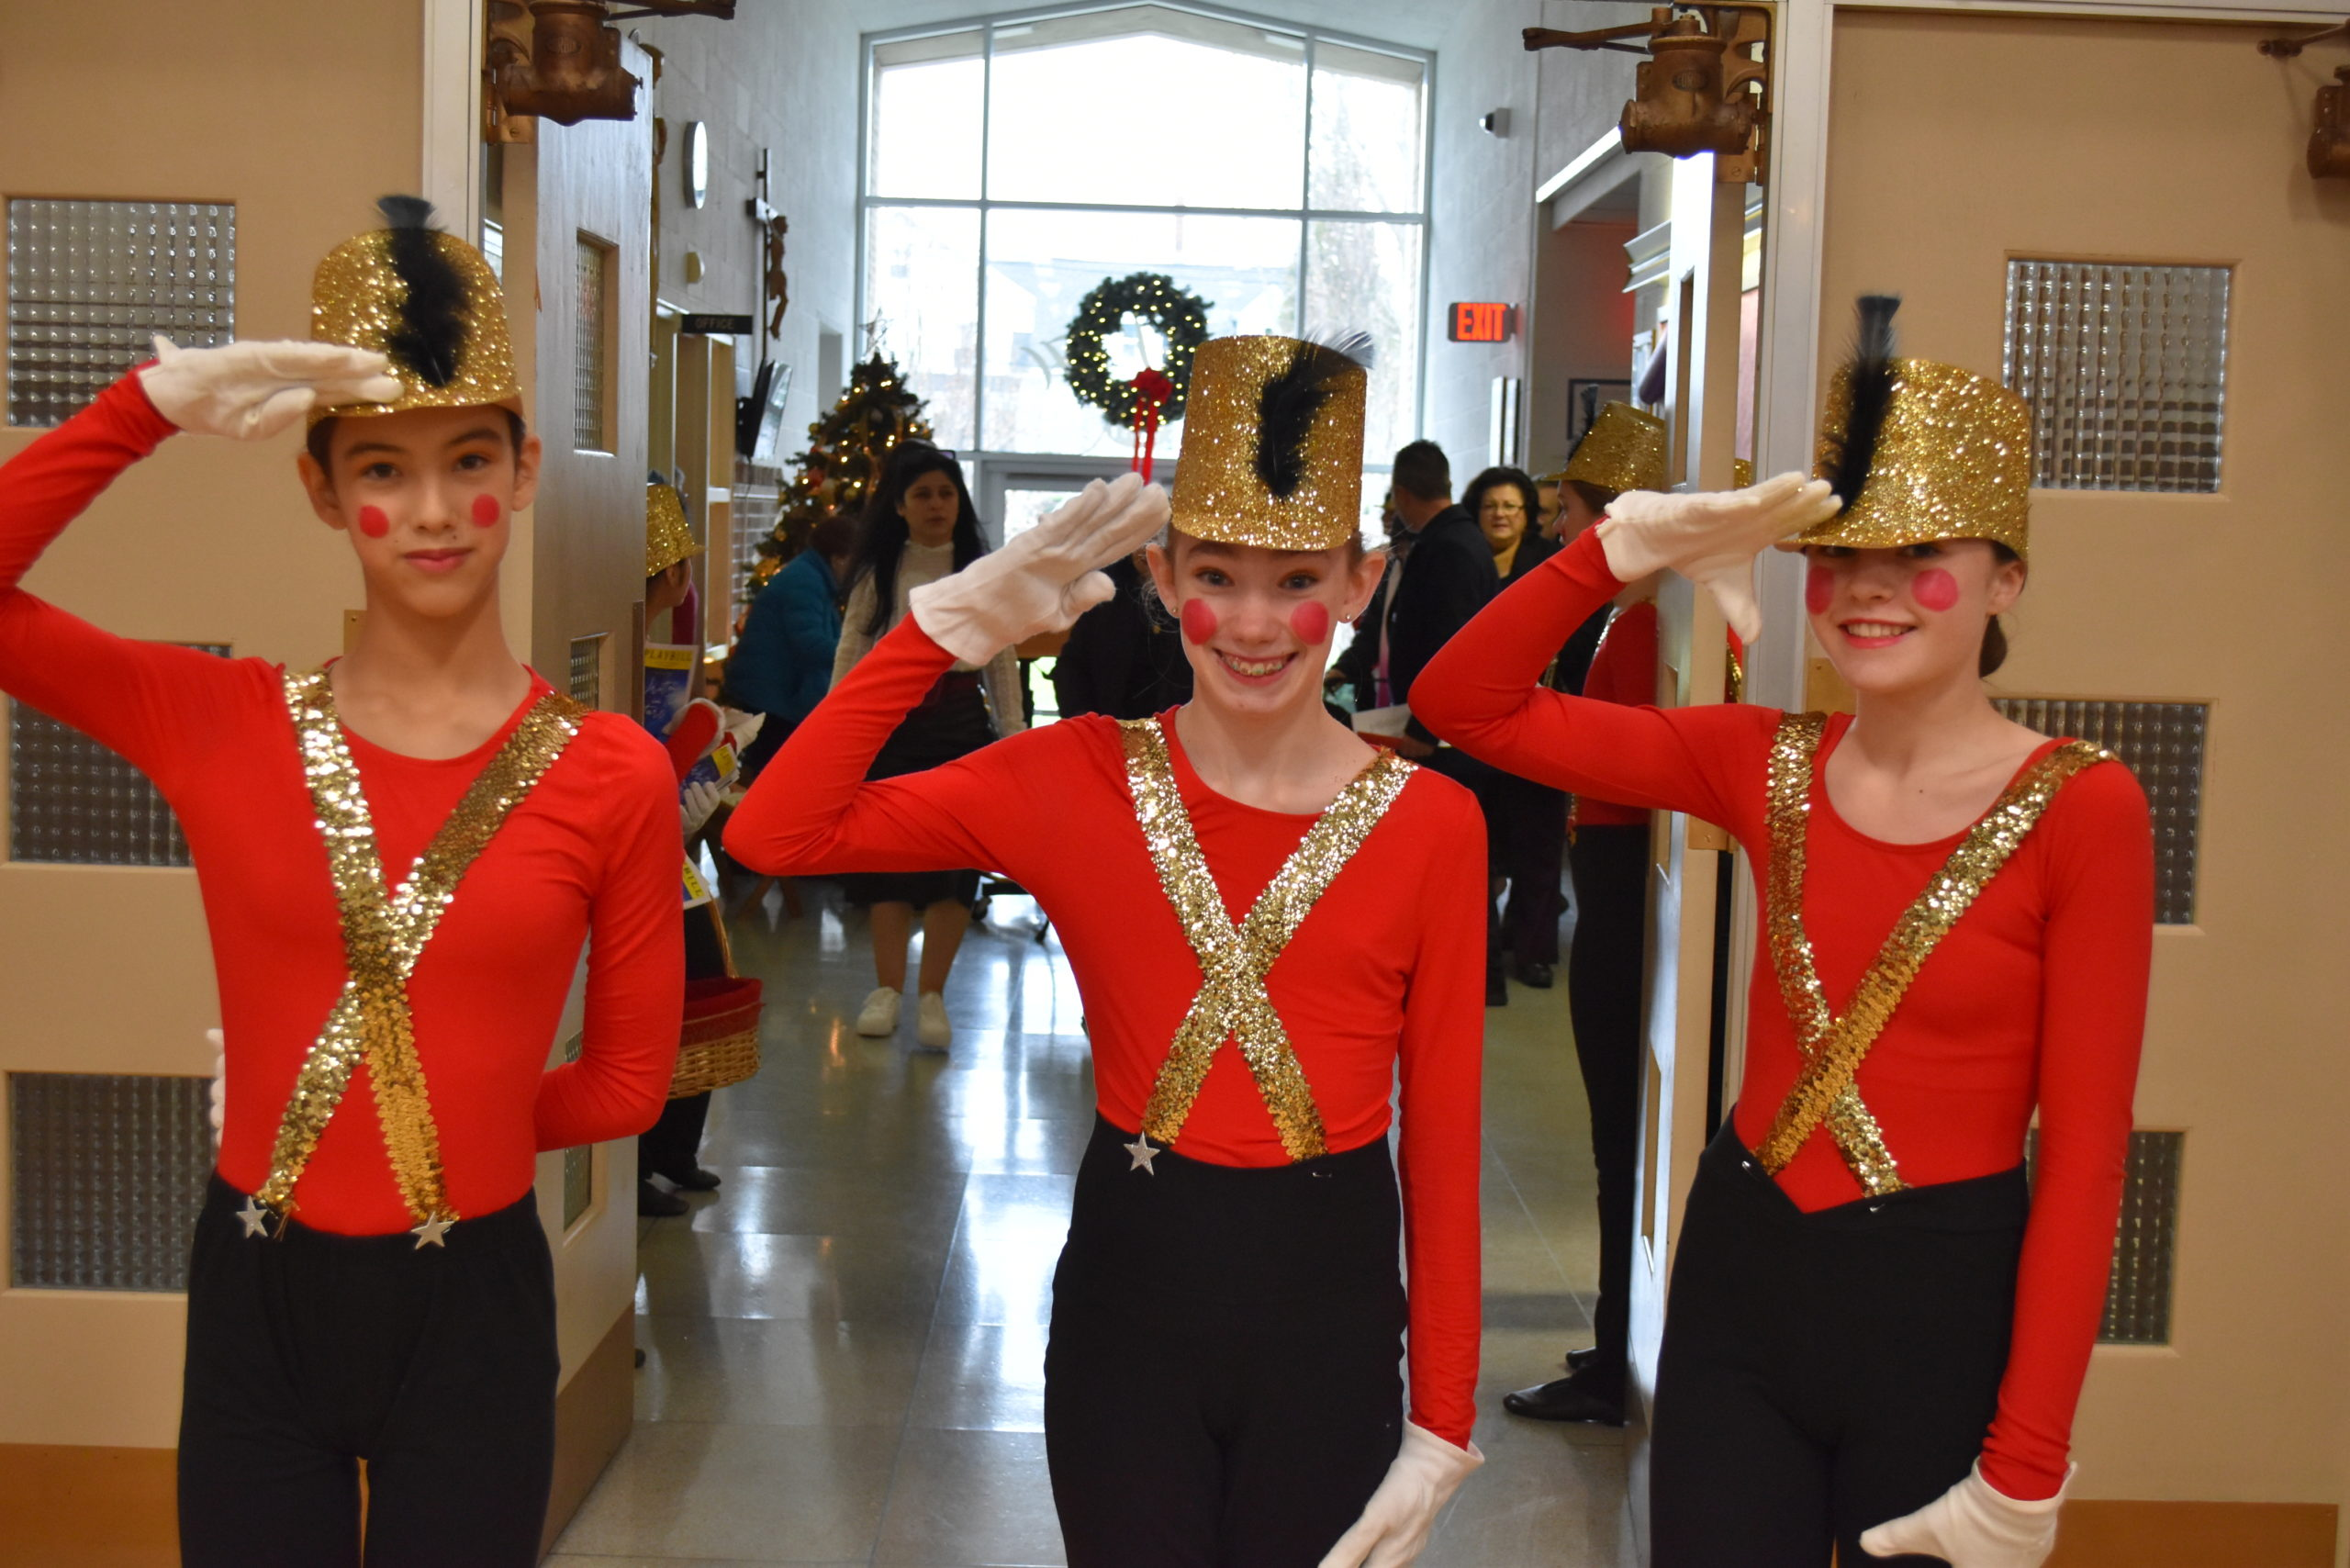 All 300 students at Our Lady of the Hamptons participated in the original production of